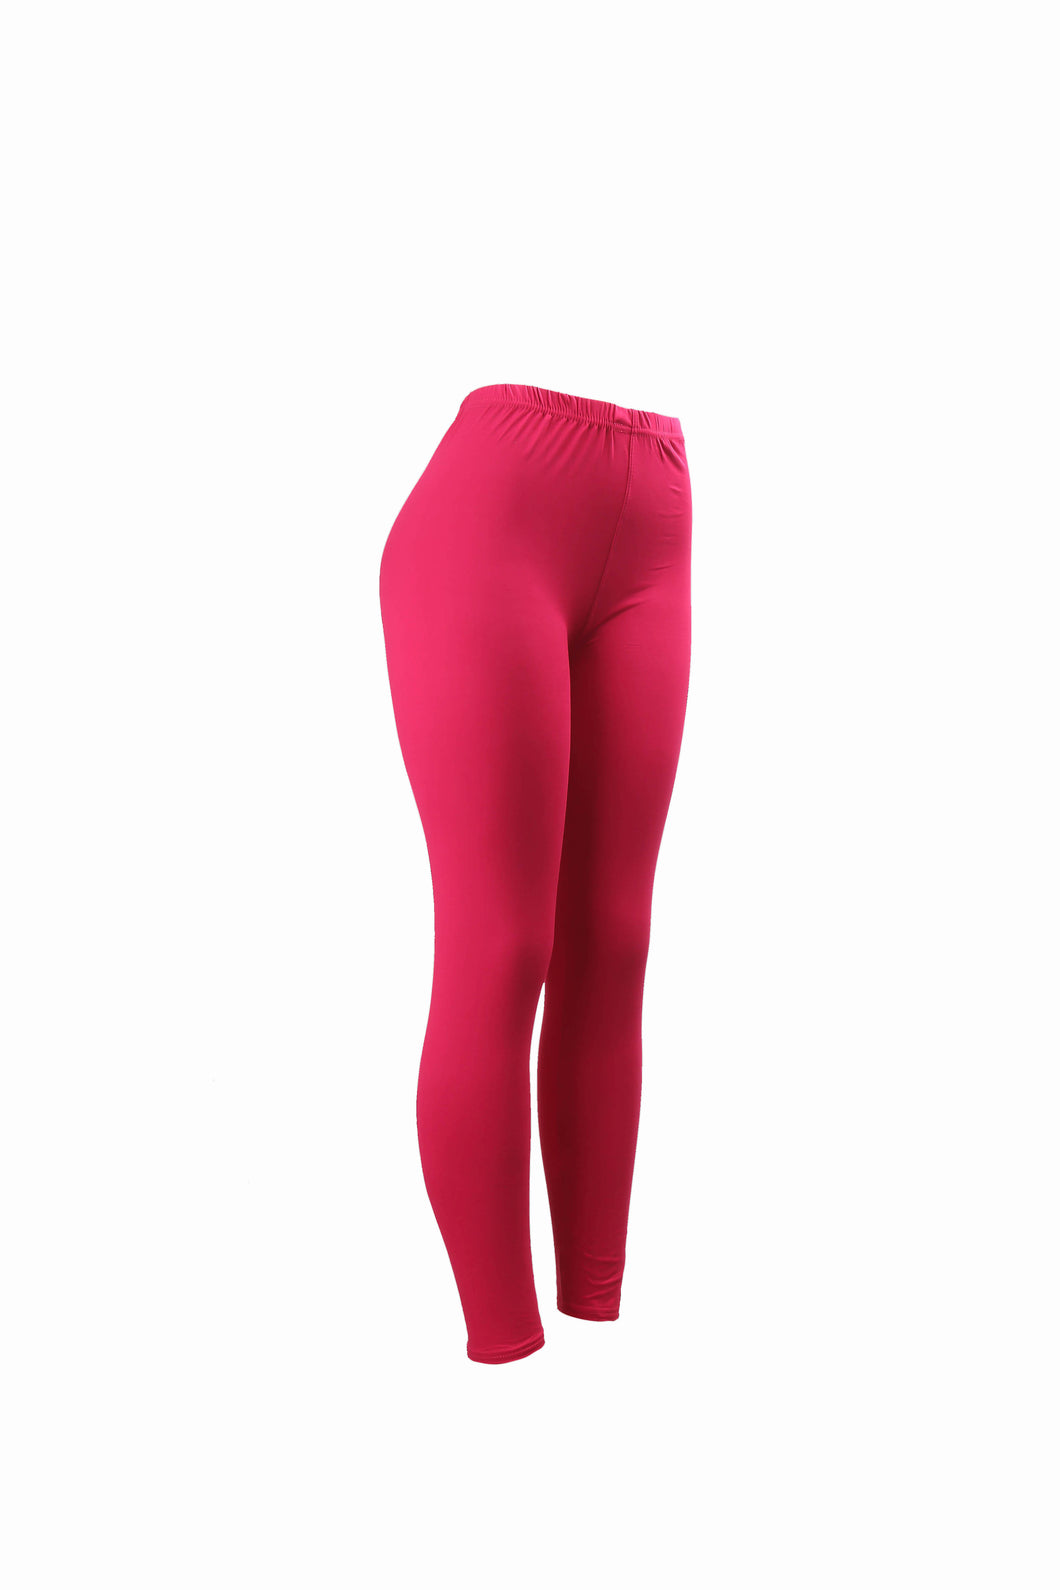 Natopia Plain Colour Fuschia Leggings Elastic Waist One Size Fits 8-14